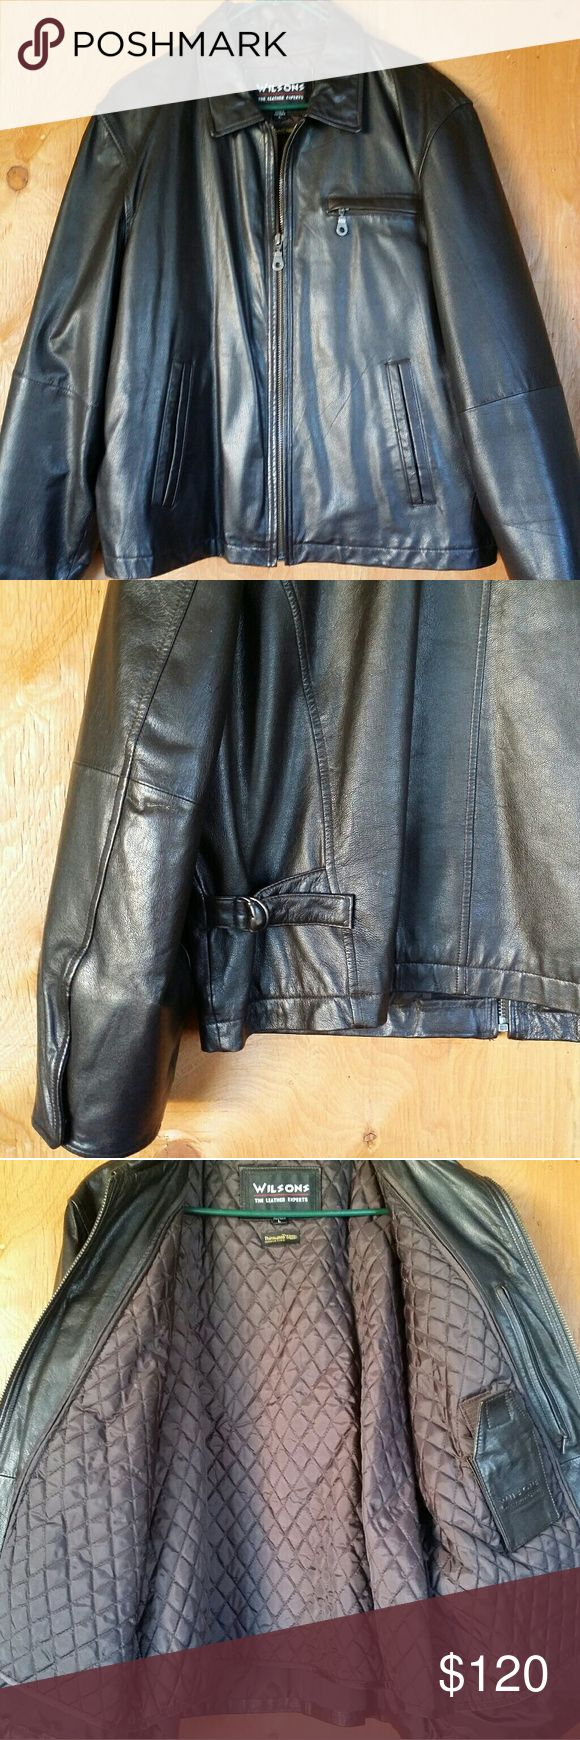 Wilson leather motorcycle jacket for men size L Excellent condition thrinsulate  3 pockets front 2 inside 26 in chest 26 in length 26 in sleeves Wilsons Leather Jackets & Coats Performance Jackets